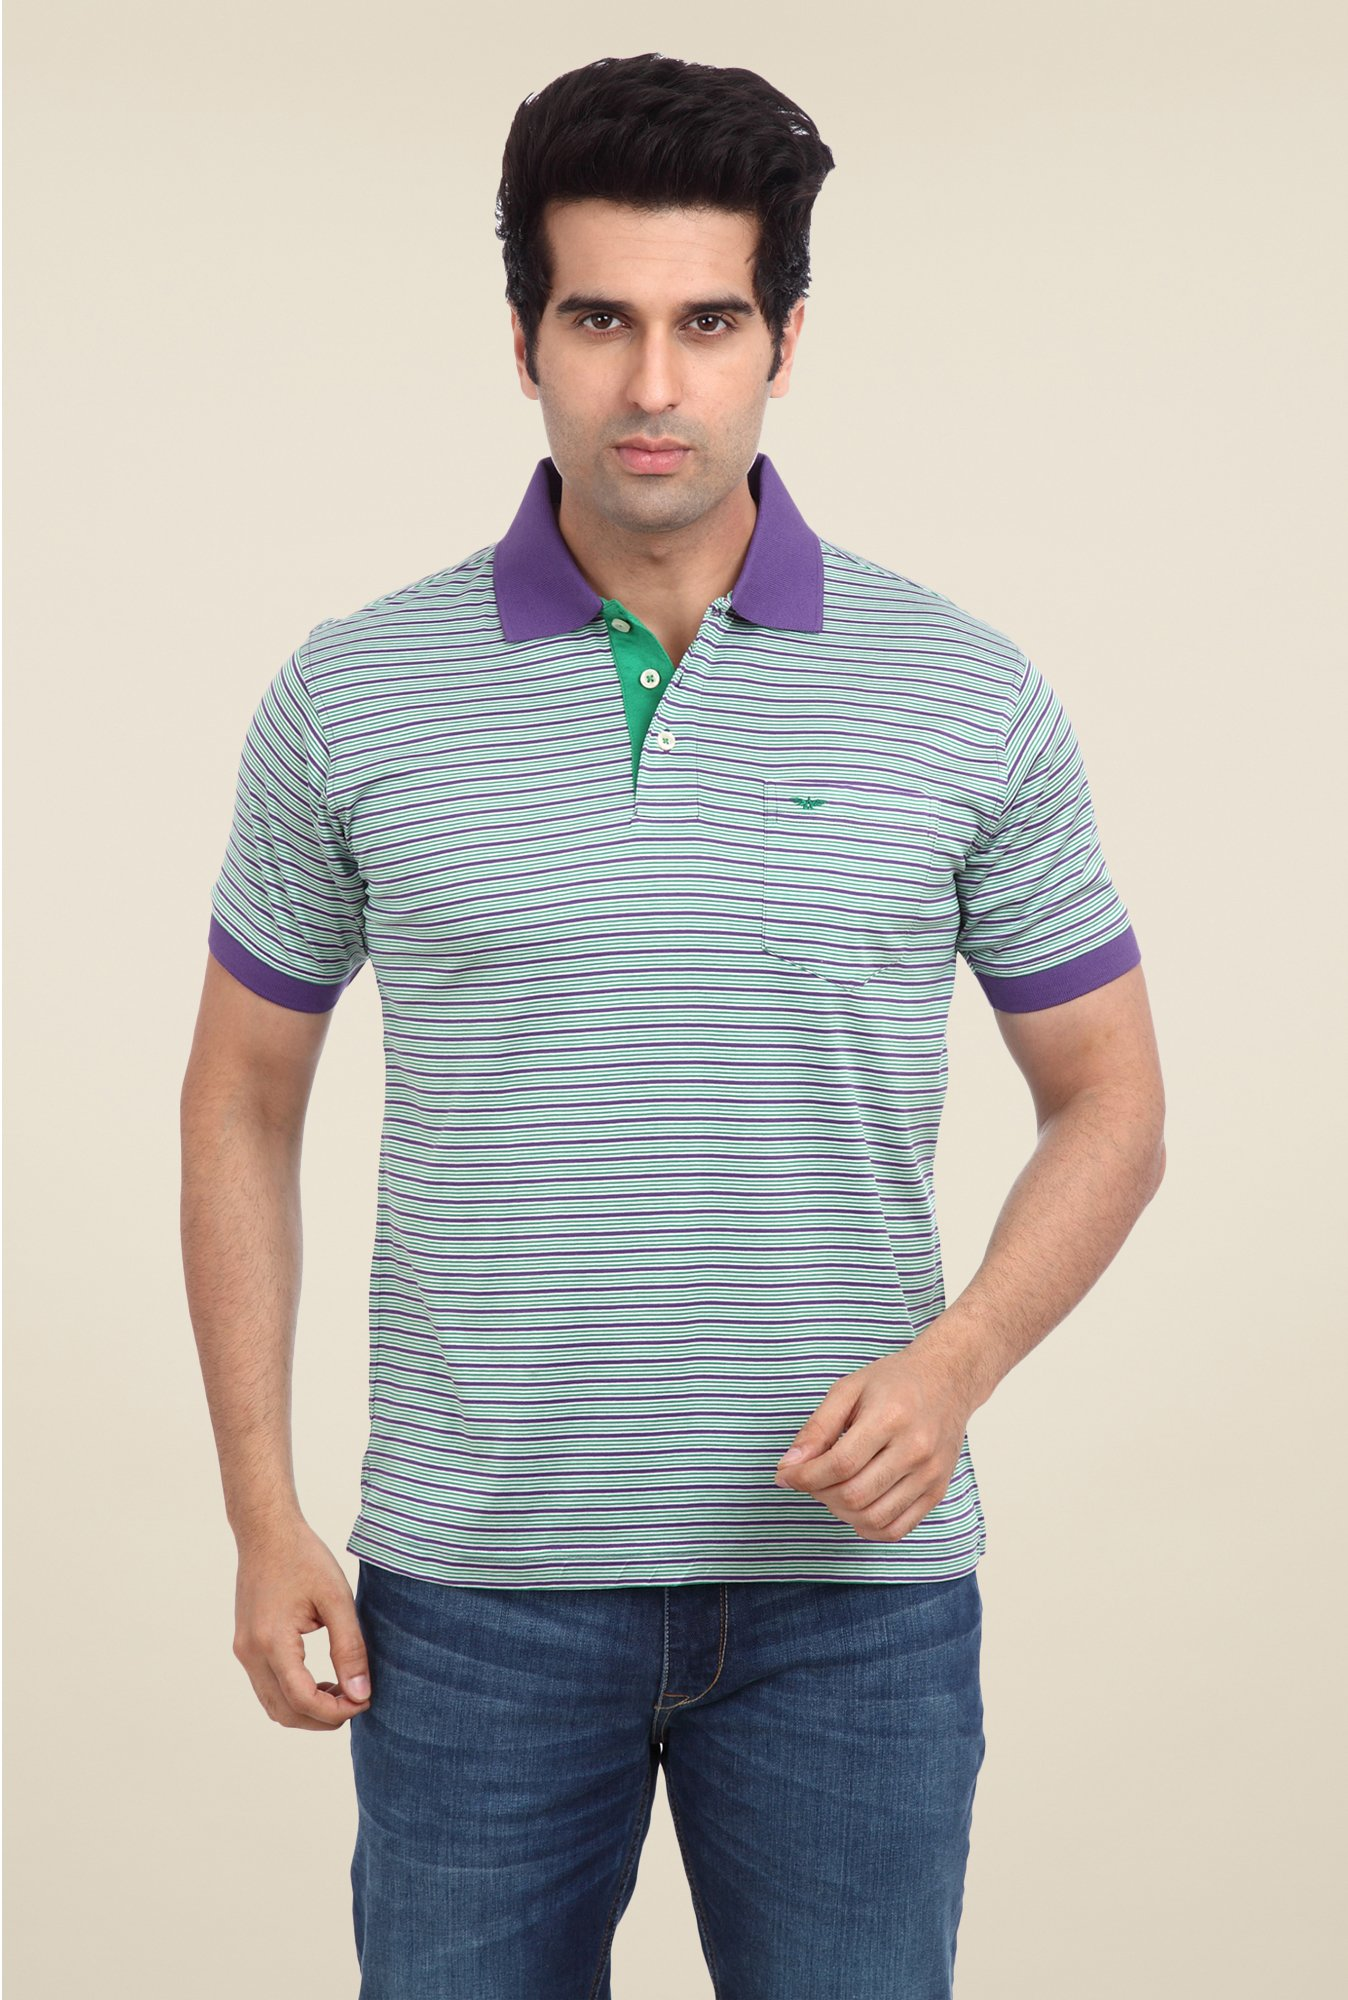 Park Avenue Purple & Green Striped Polo T Shirt